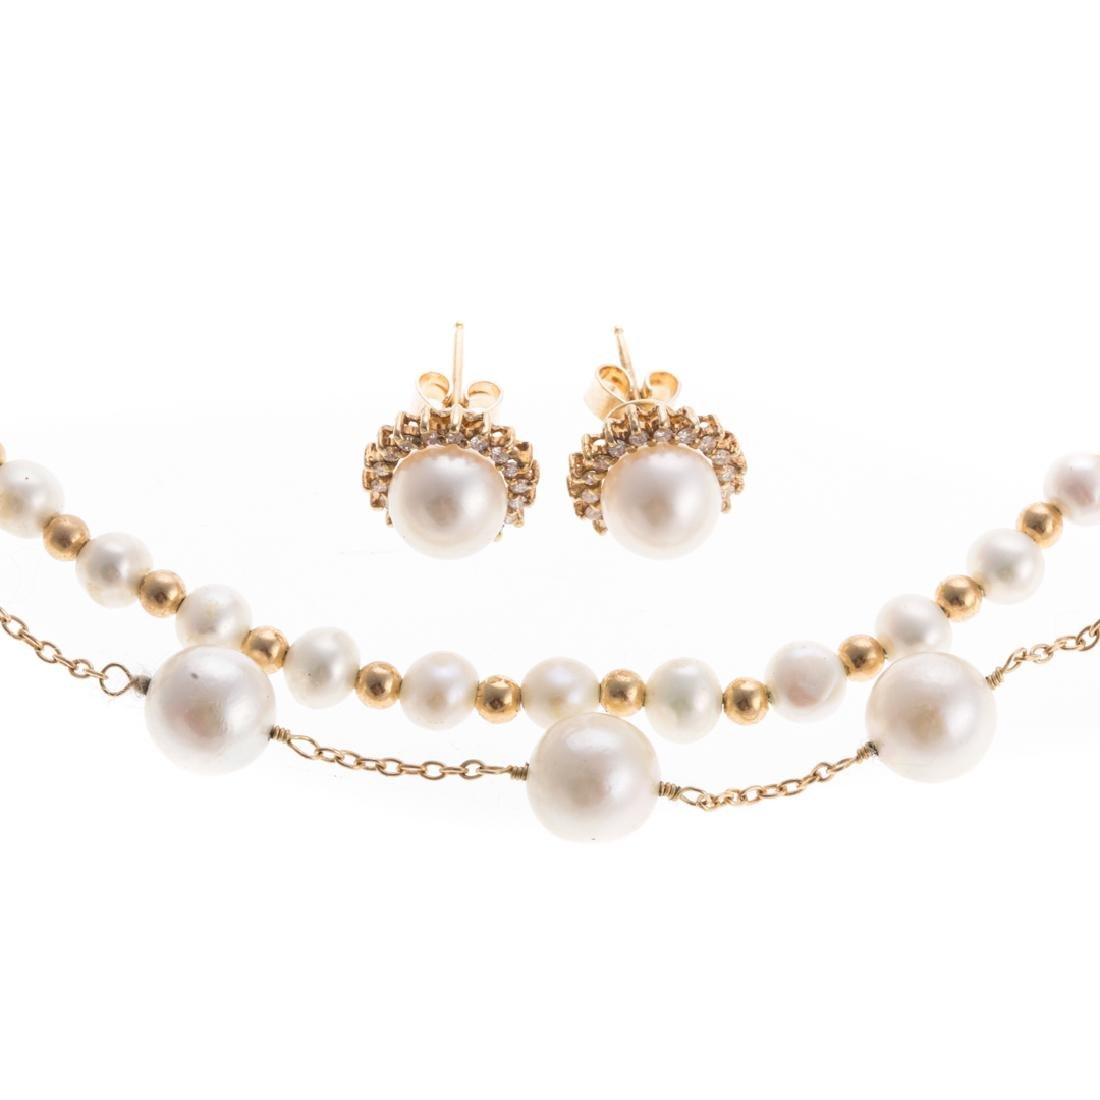 A Selection of Lady's Pearl Jewelry